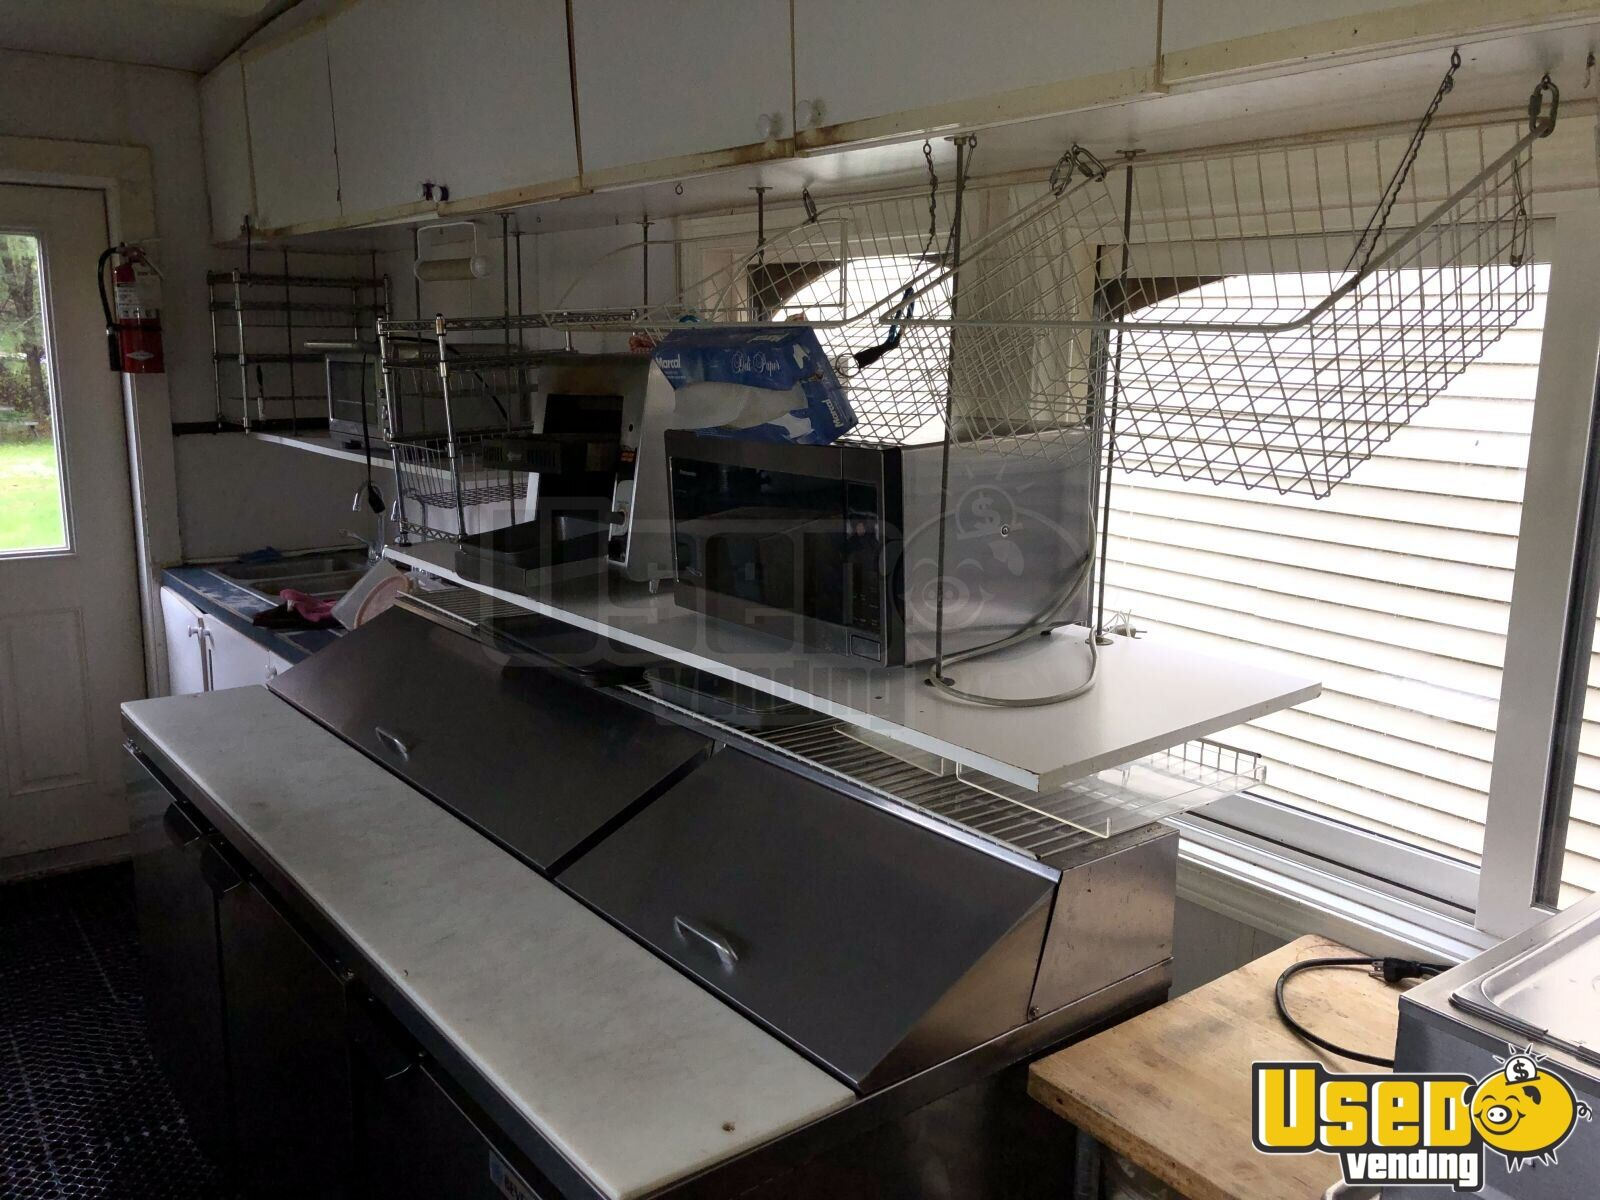 2004 Classic Trolley, Medford, Or Coffee Trailer Work Table New Hampshire for Sale - 17